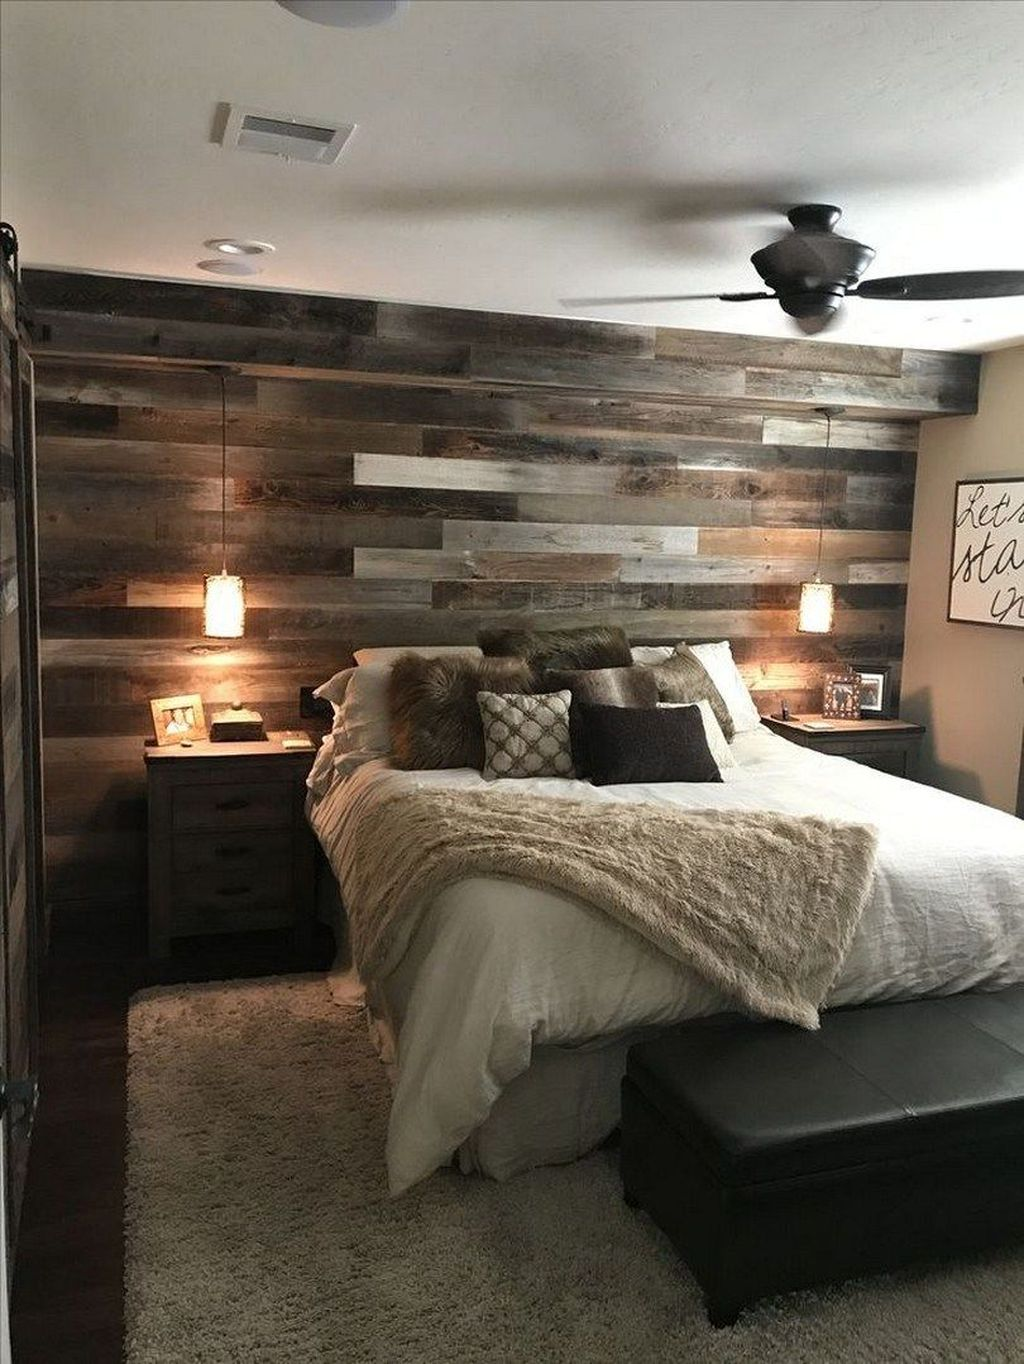 The Best Small Master Bedroom Design Ideas WIth Farmhouse Style 13